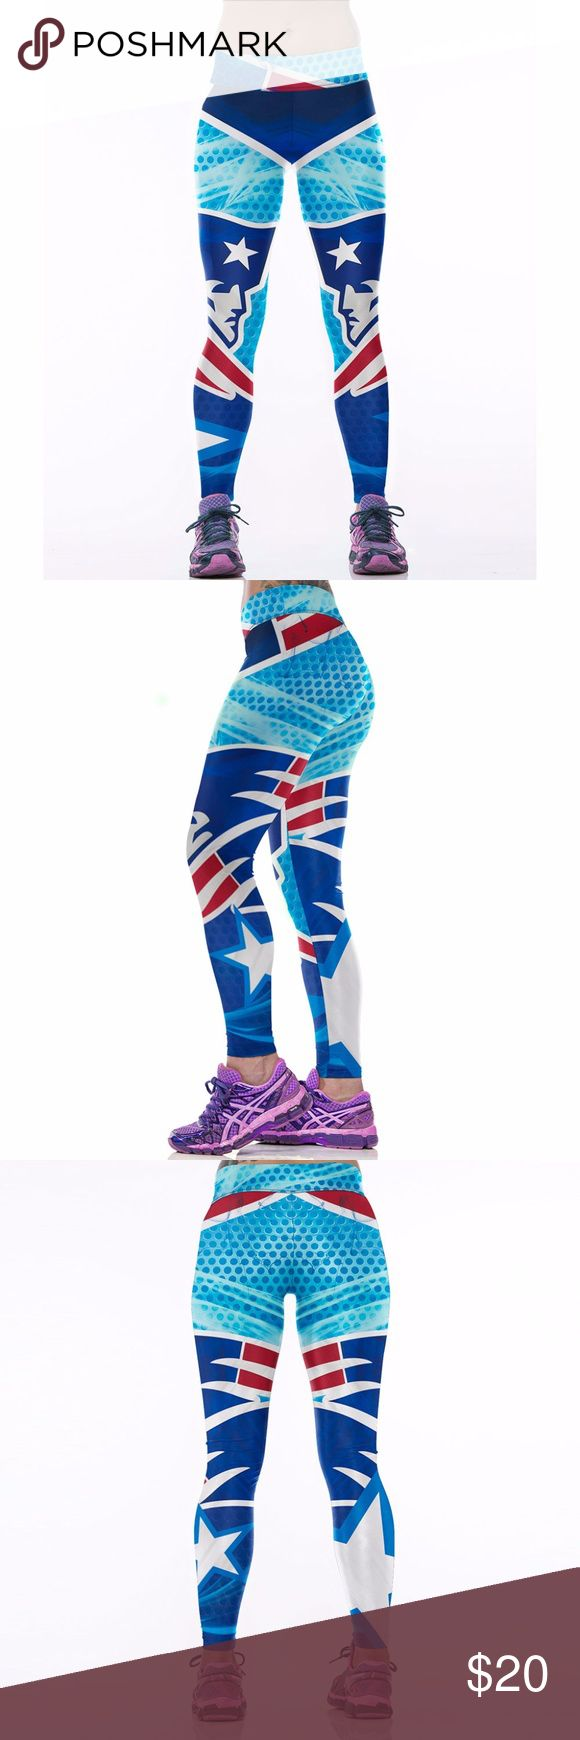 New England Patriots Leggings Lightweight soft- quick dry breathable fabric Suitable for any kind of workout, gym, yoga, Zumba, cycling, etc. or casual wear High-quality construction with 6-thread double lock stitch seams Four-way Stretch Material: 82% Polyester, 18% Spandex Pants Leggings